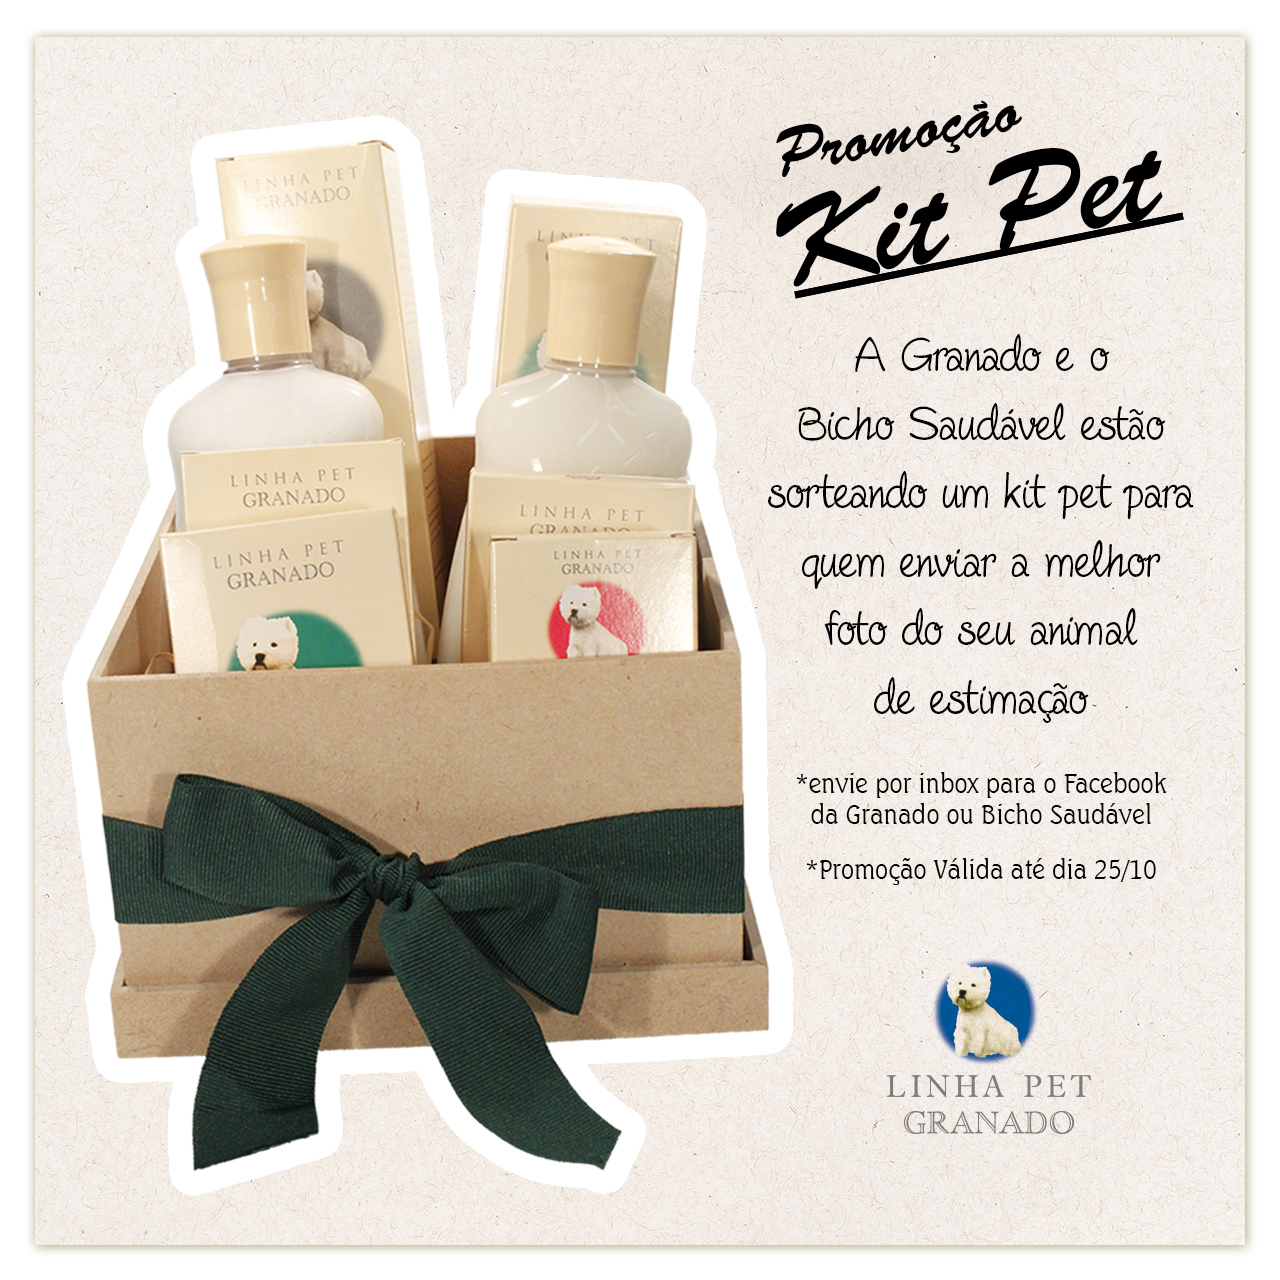 kit pet promocao2granado